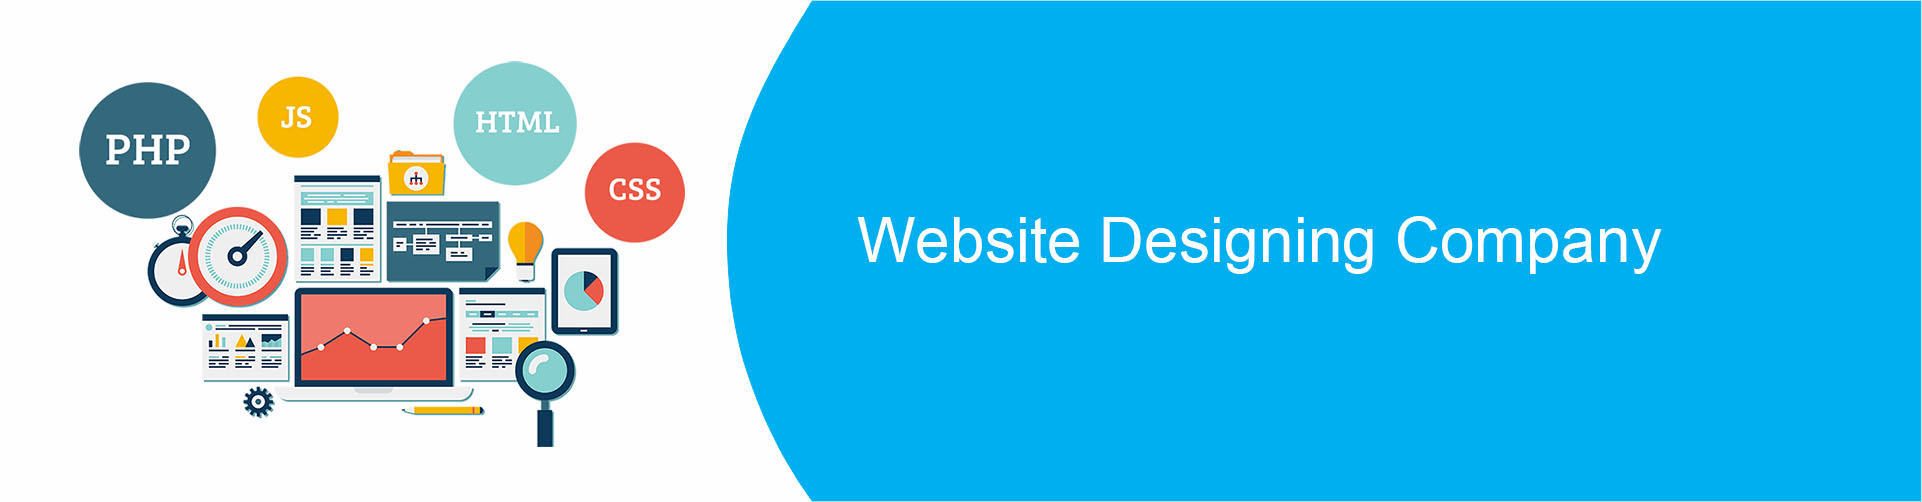 website-designing-company